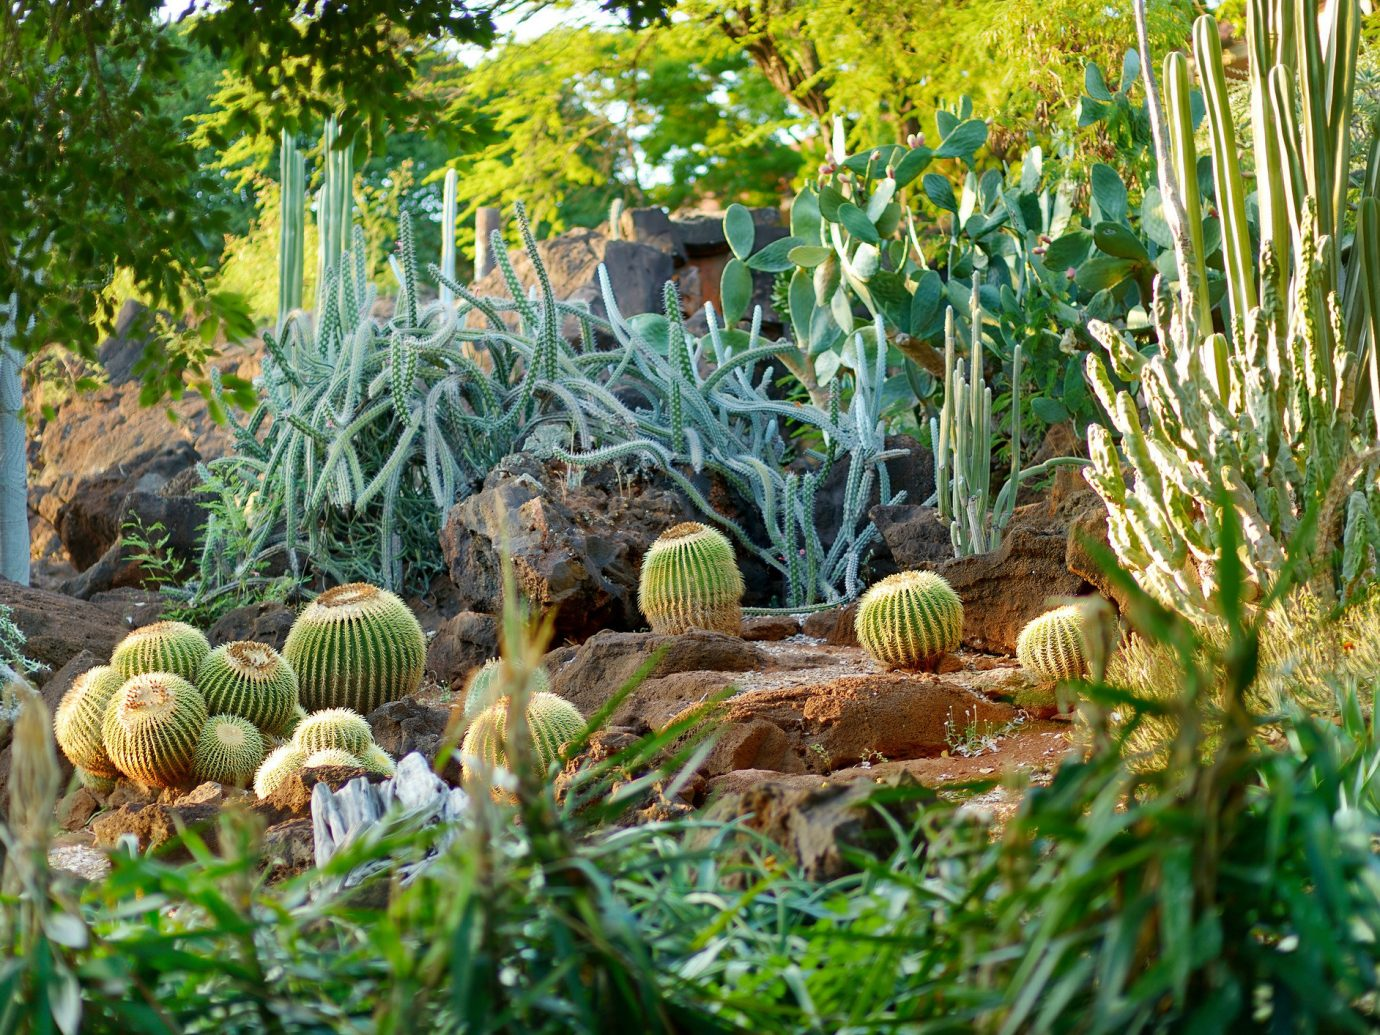 Cacti at the Moorten Botanical Garden